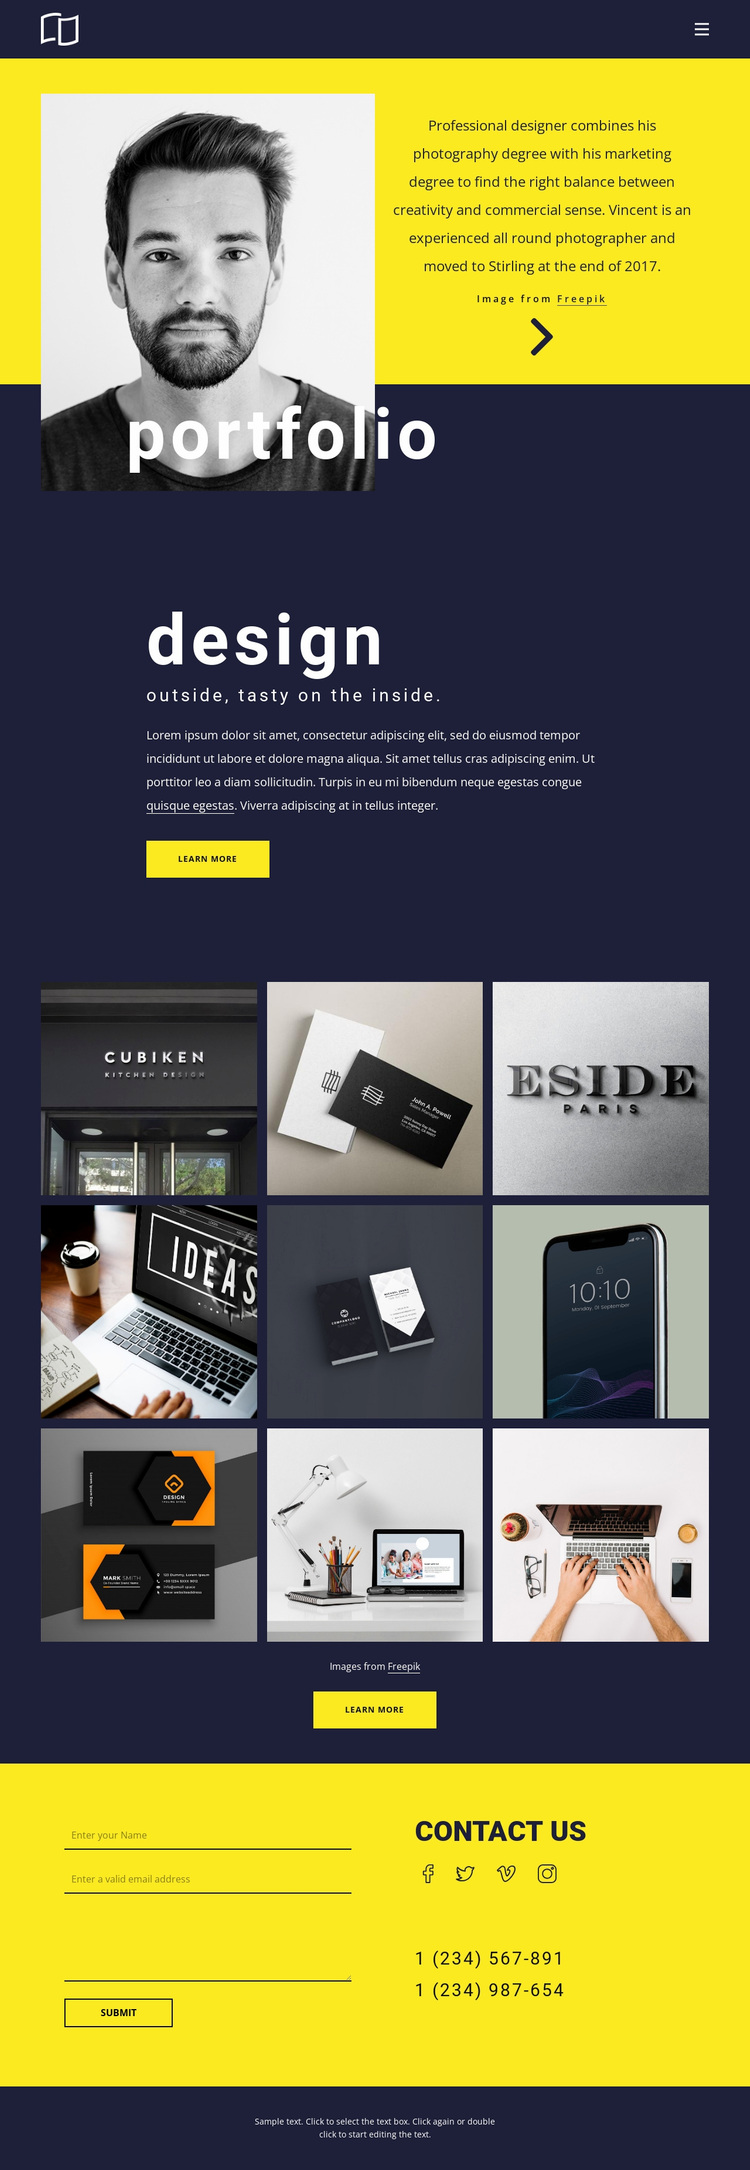 Amazing portfolio Website Design